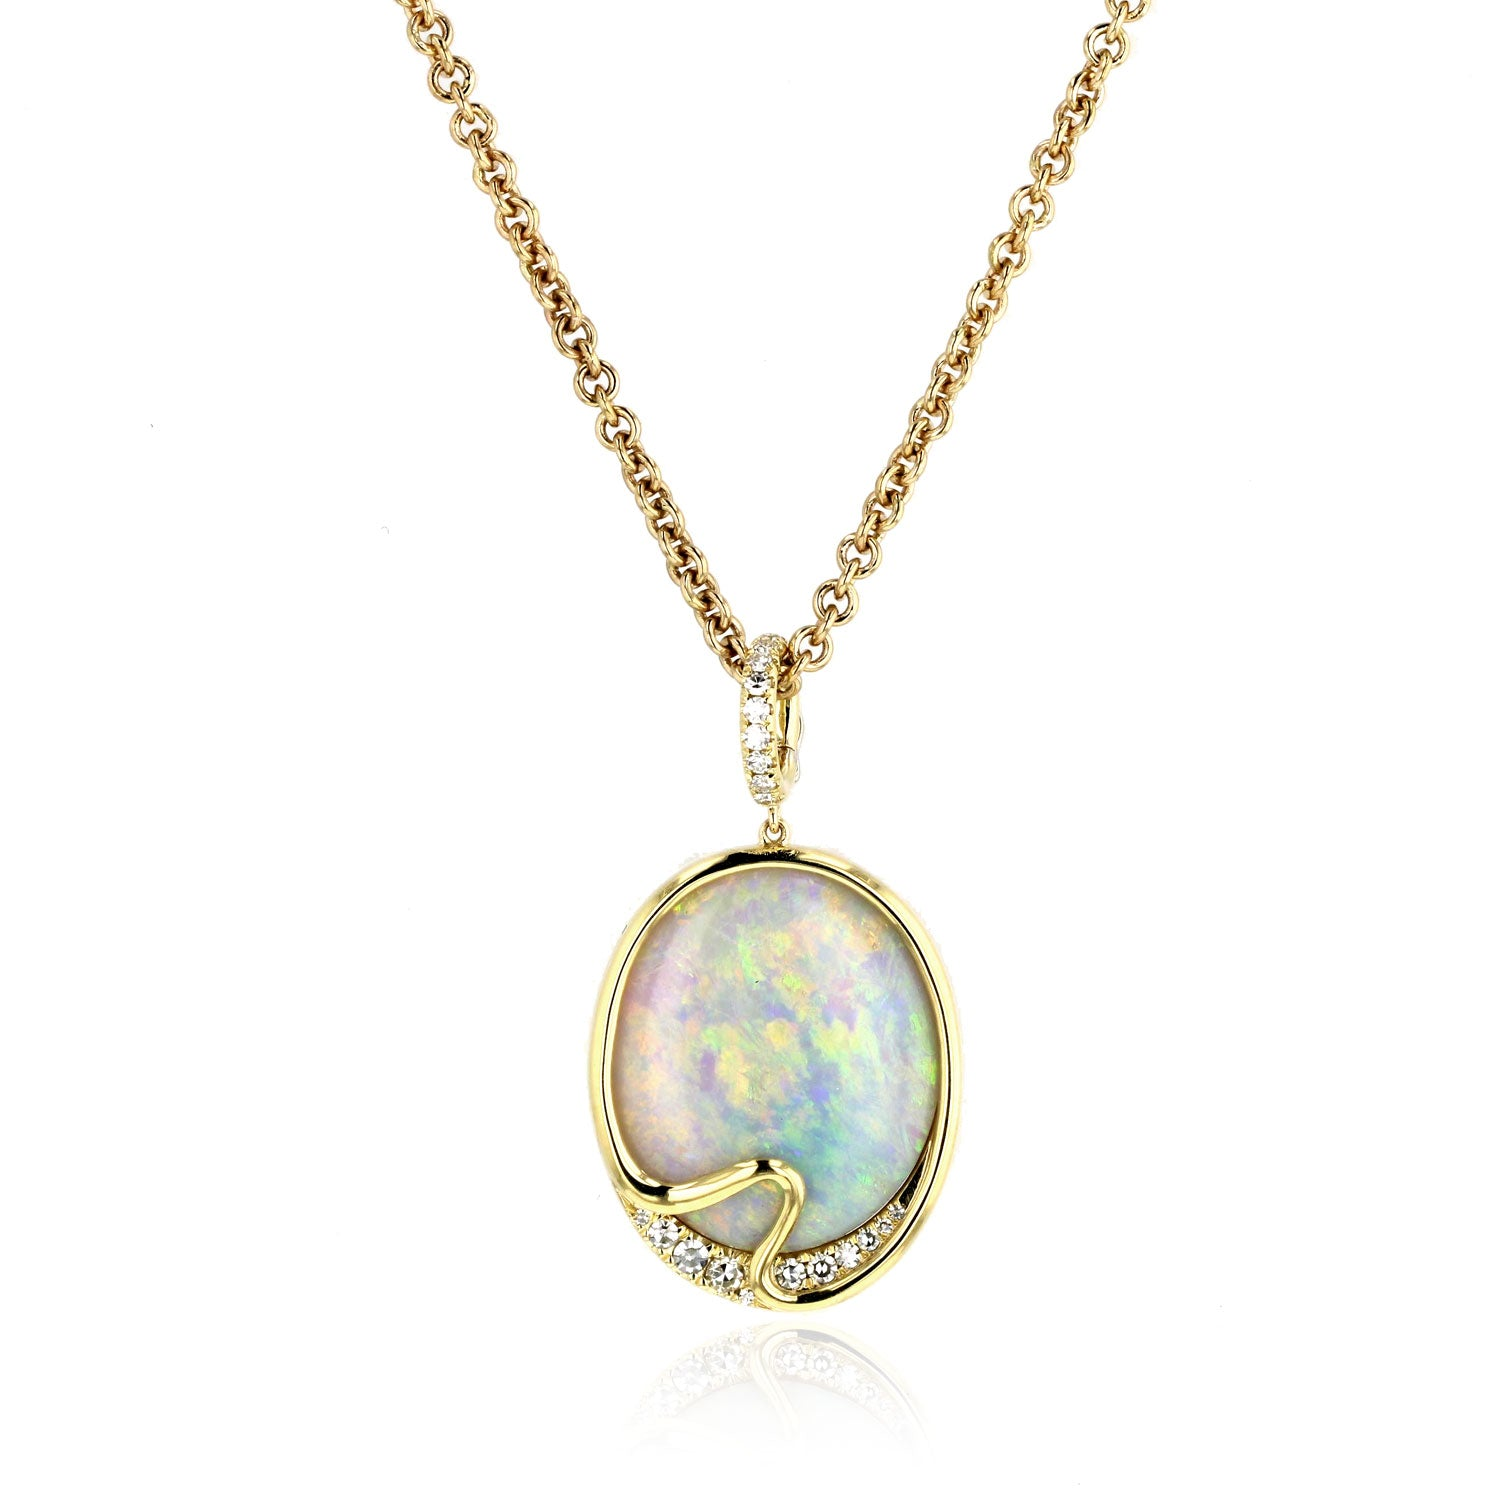 Opal and Diamond Necklace - 18k Yellow Gold